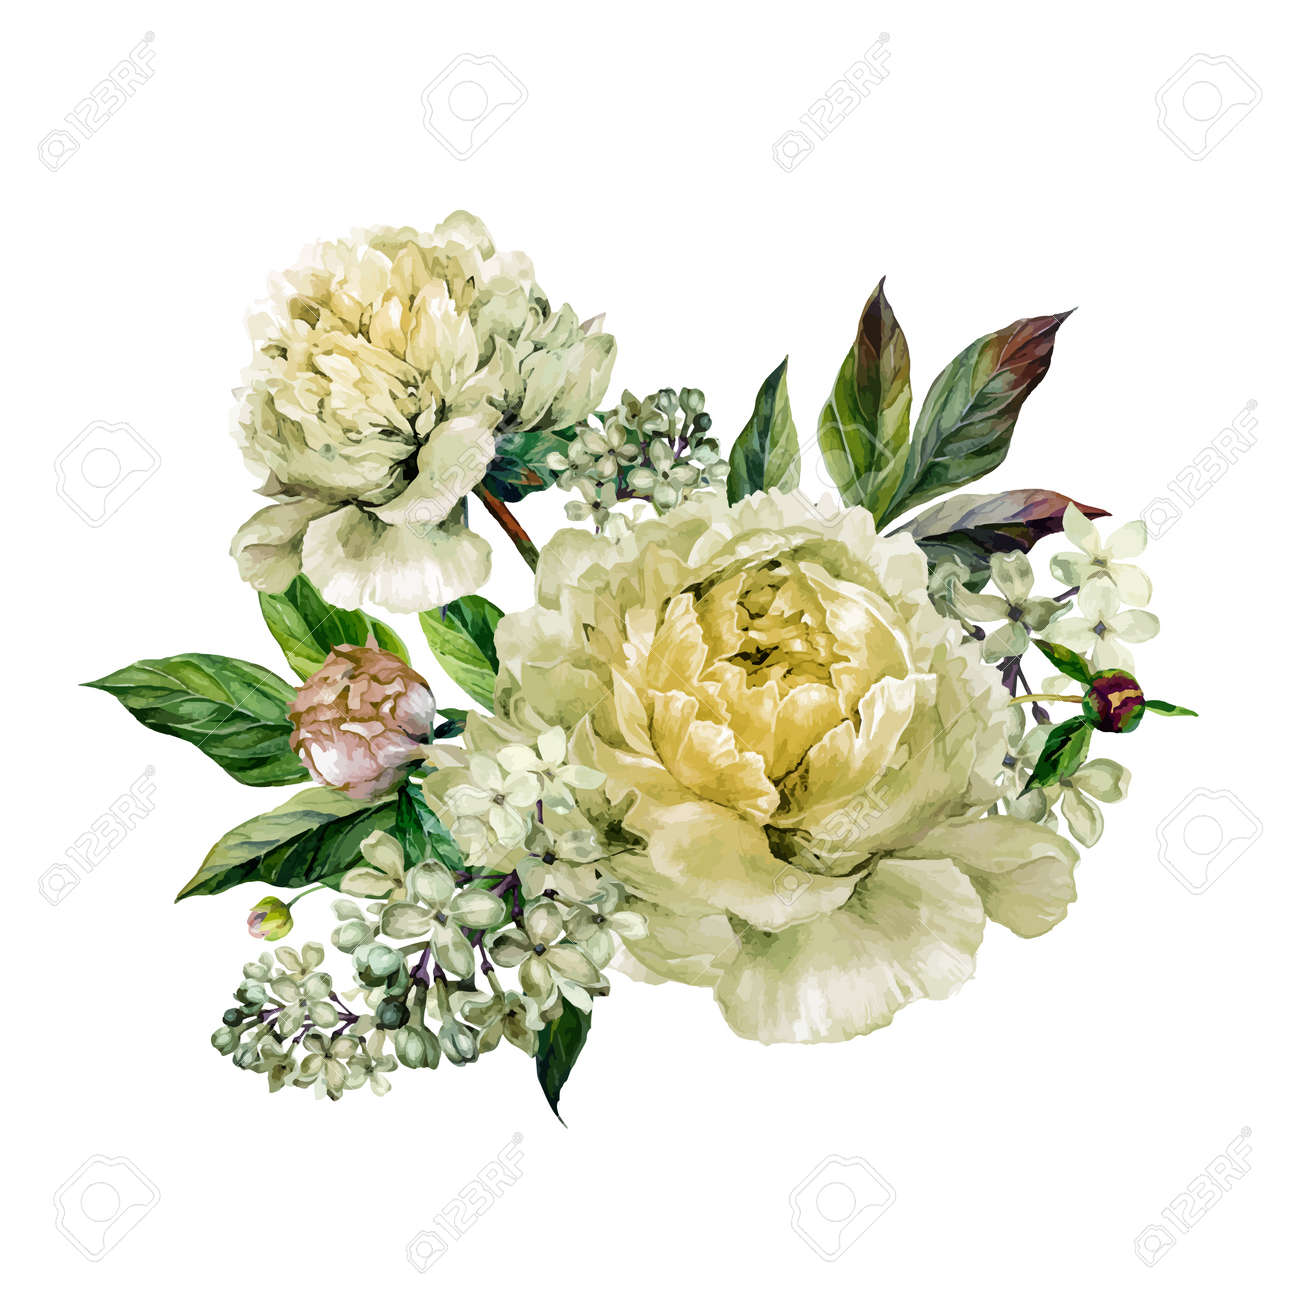 Vector - Vintage floral bouquet of white peonies and white lilac. Hand  drawn watercolor botanical illustration. Summer floral peonies greeting card